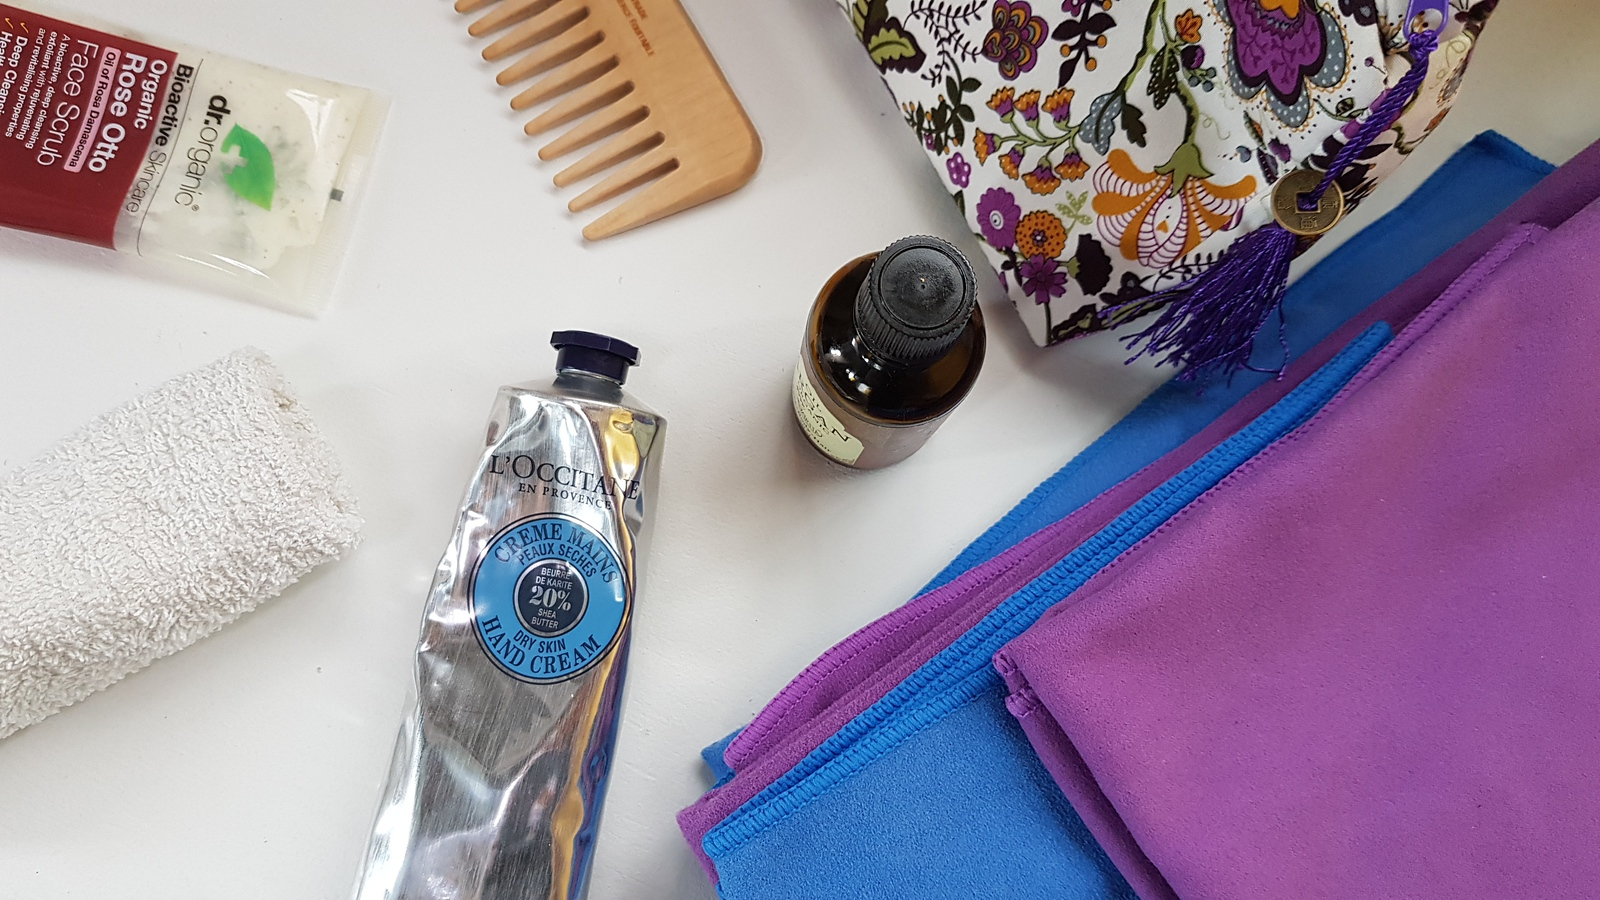 Van Life Bathroom Essentials: blue & purple microfibre towels, wooden combs, Argan Oil, rose face scrub, Loccitane hand cream, face cloth and flower decorated cosmetic bag